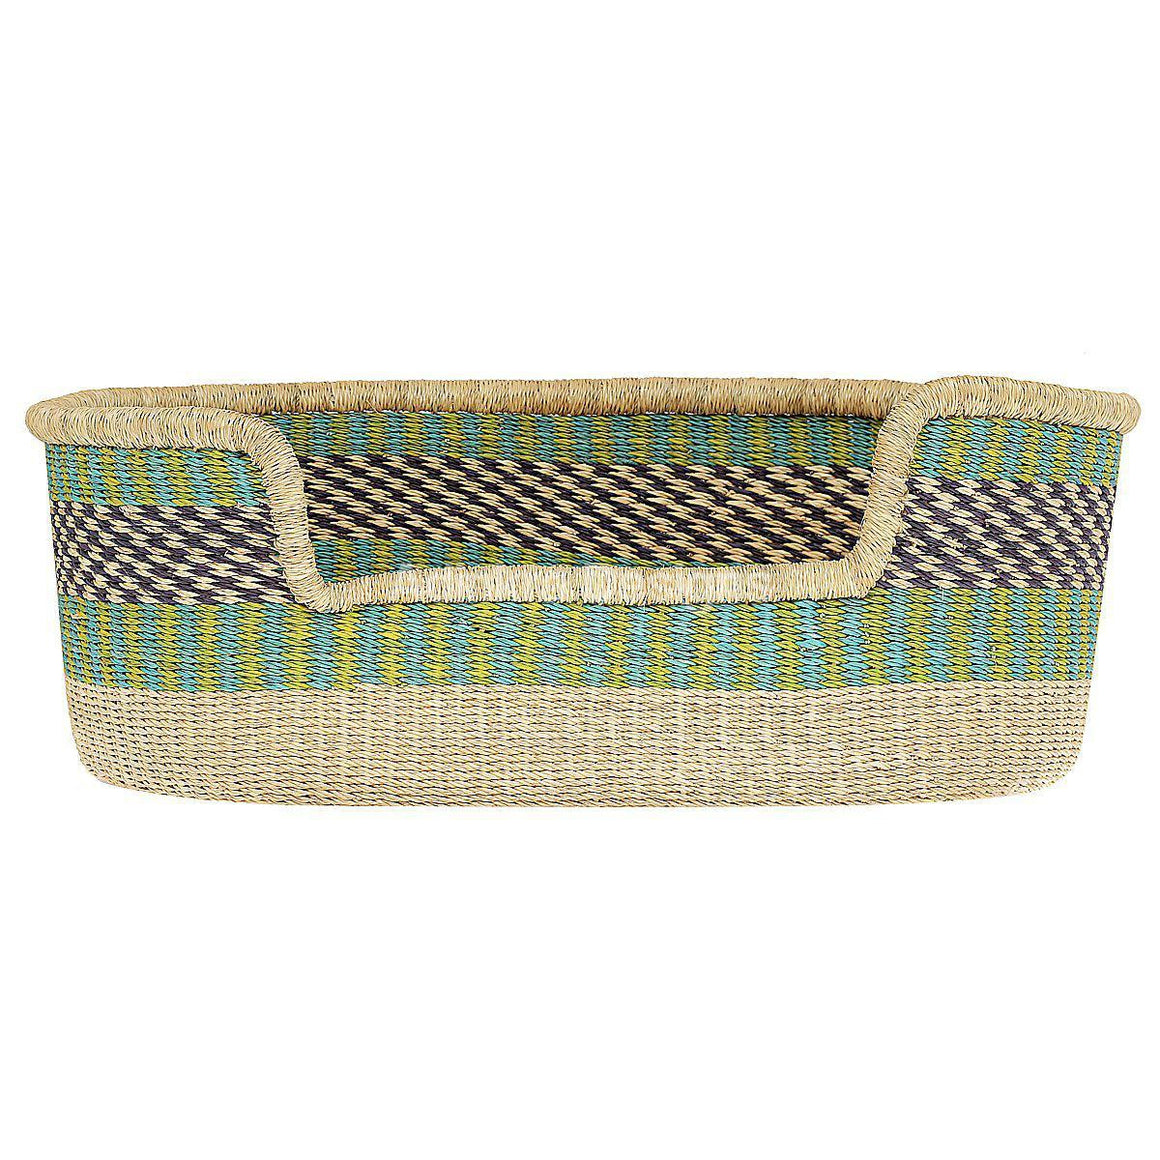 Dog Basket - Medium - 2-Adinkra Designs